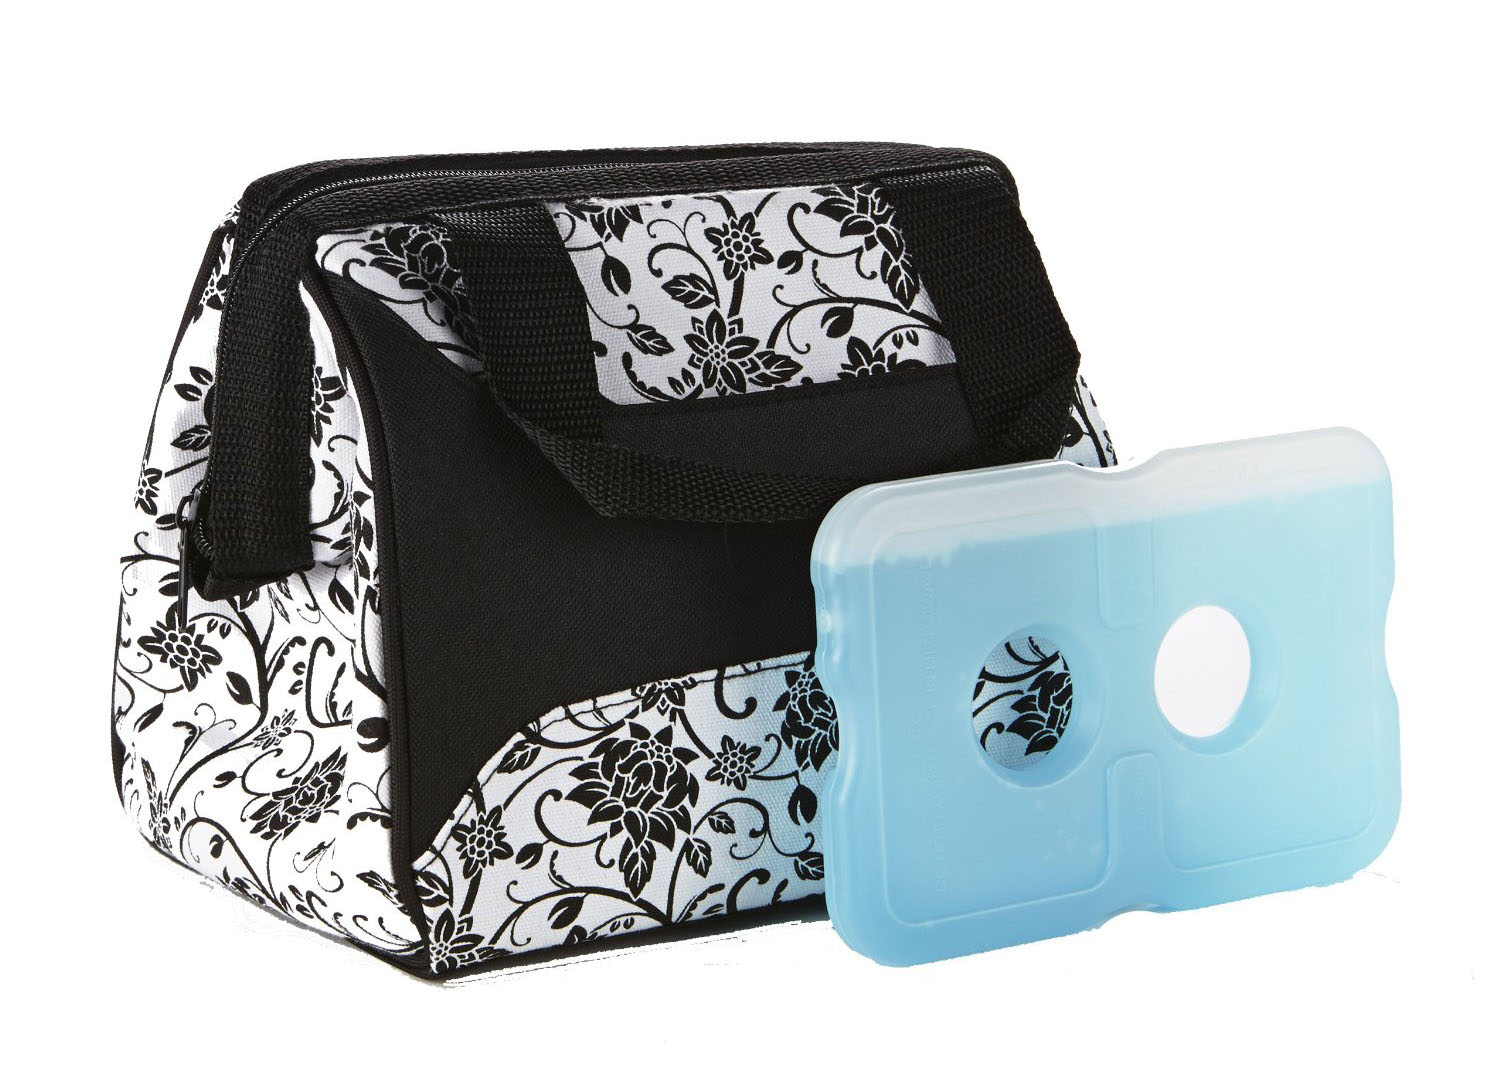 FIT & FRESH 372FF34 LUNCH BAG IN EBONY FLORAL WITH ICE YOUR